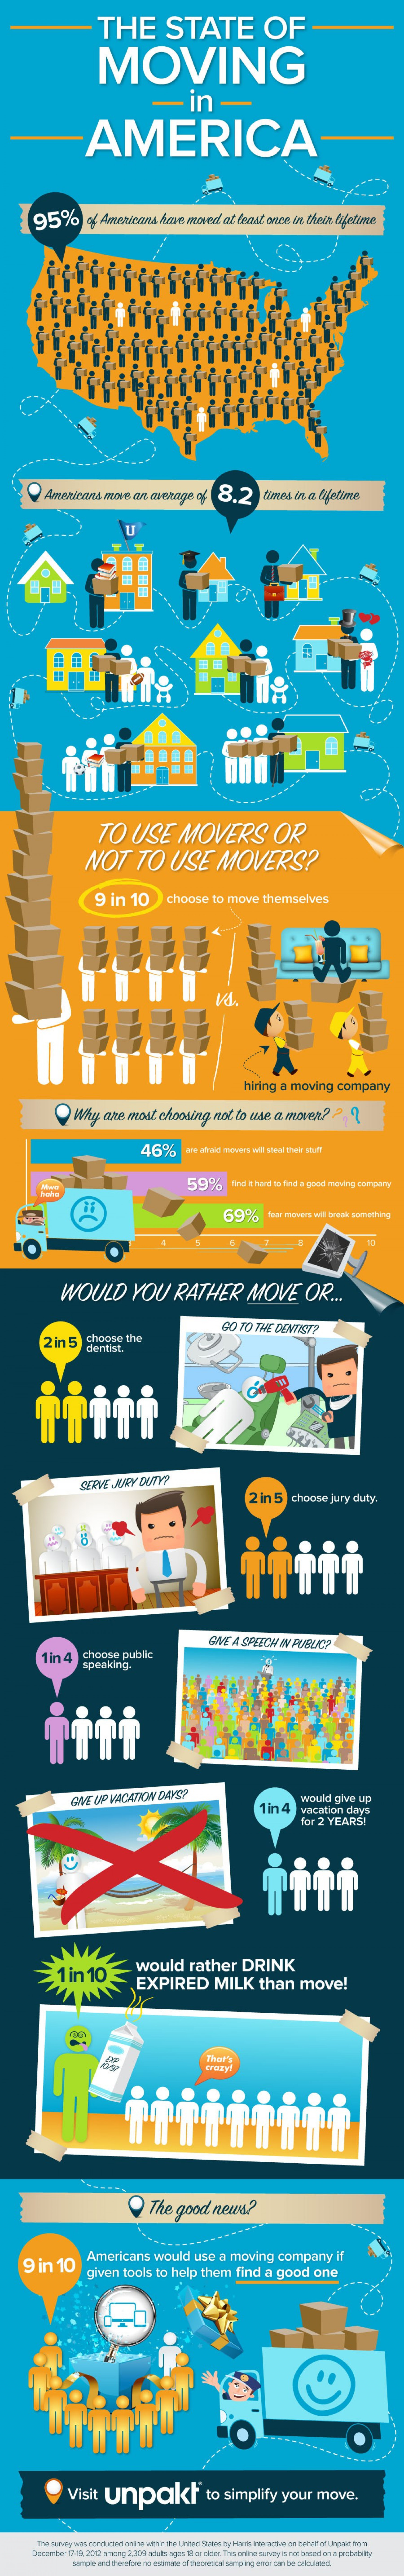 Exact Price....No Surprise : Research on Hiring a Moving Company Infographic